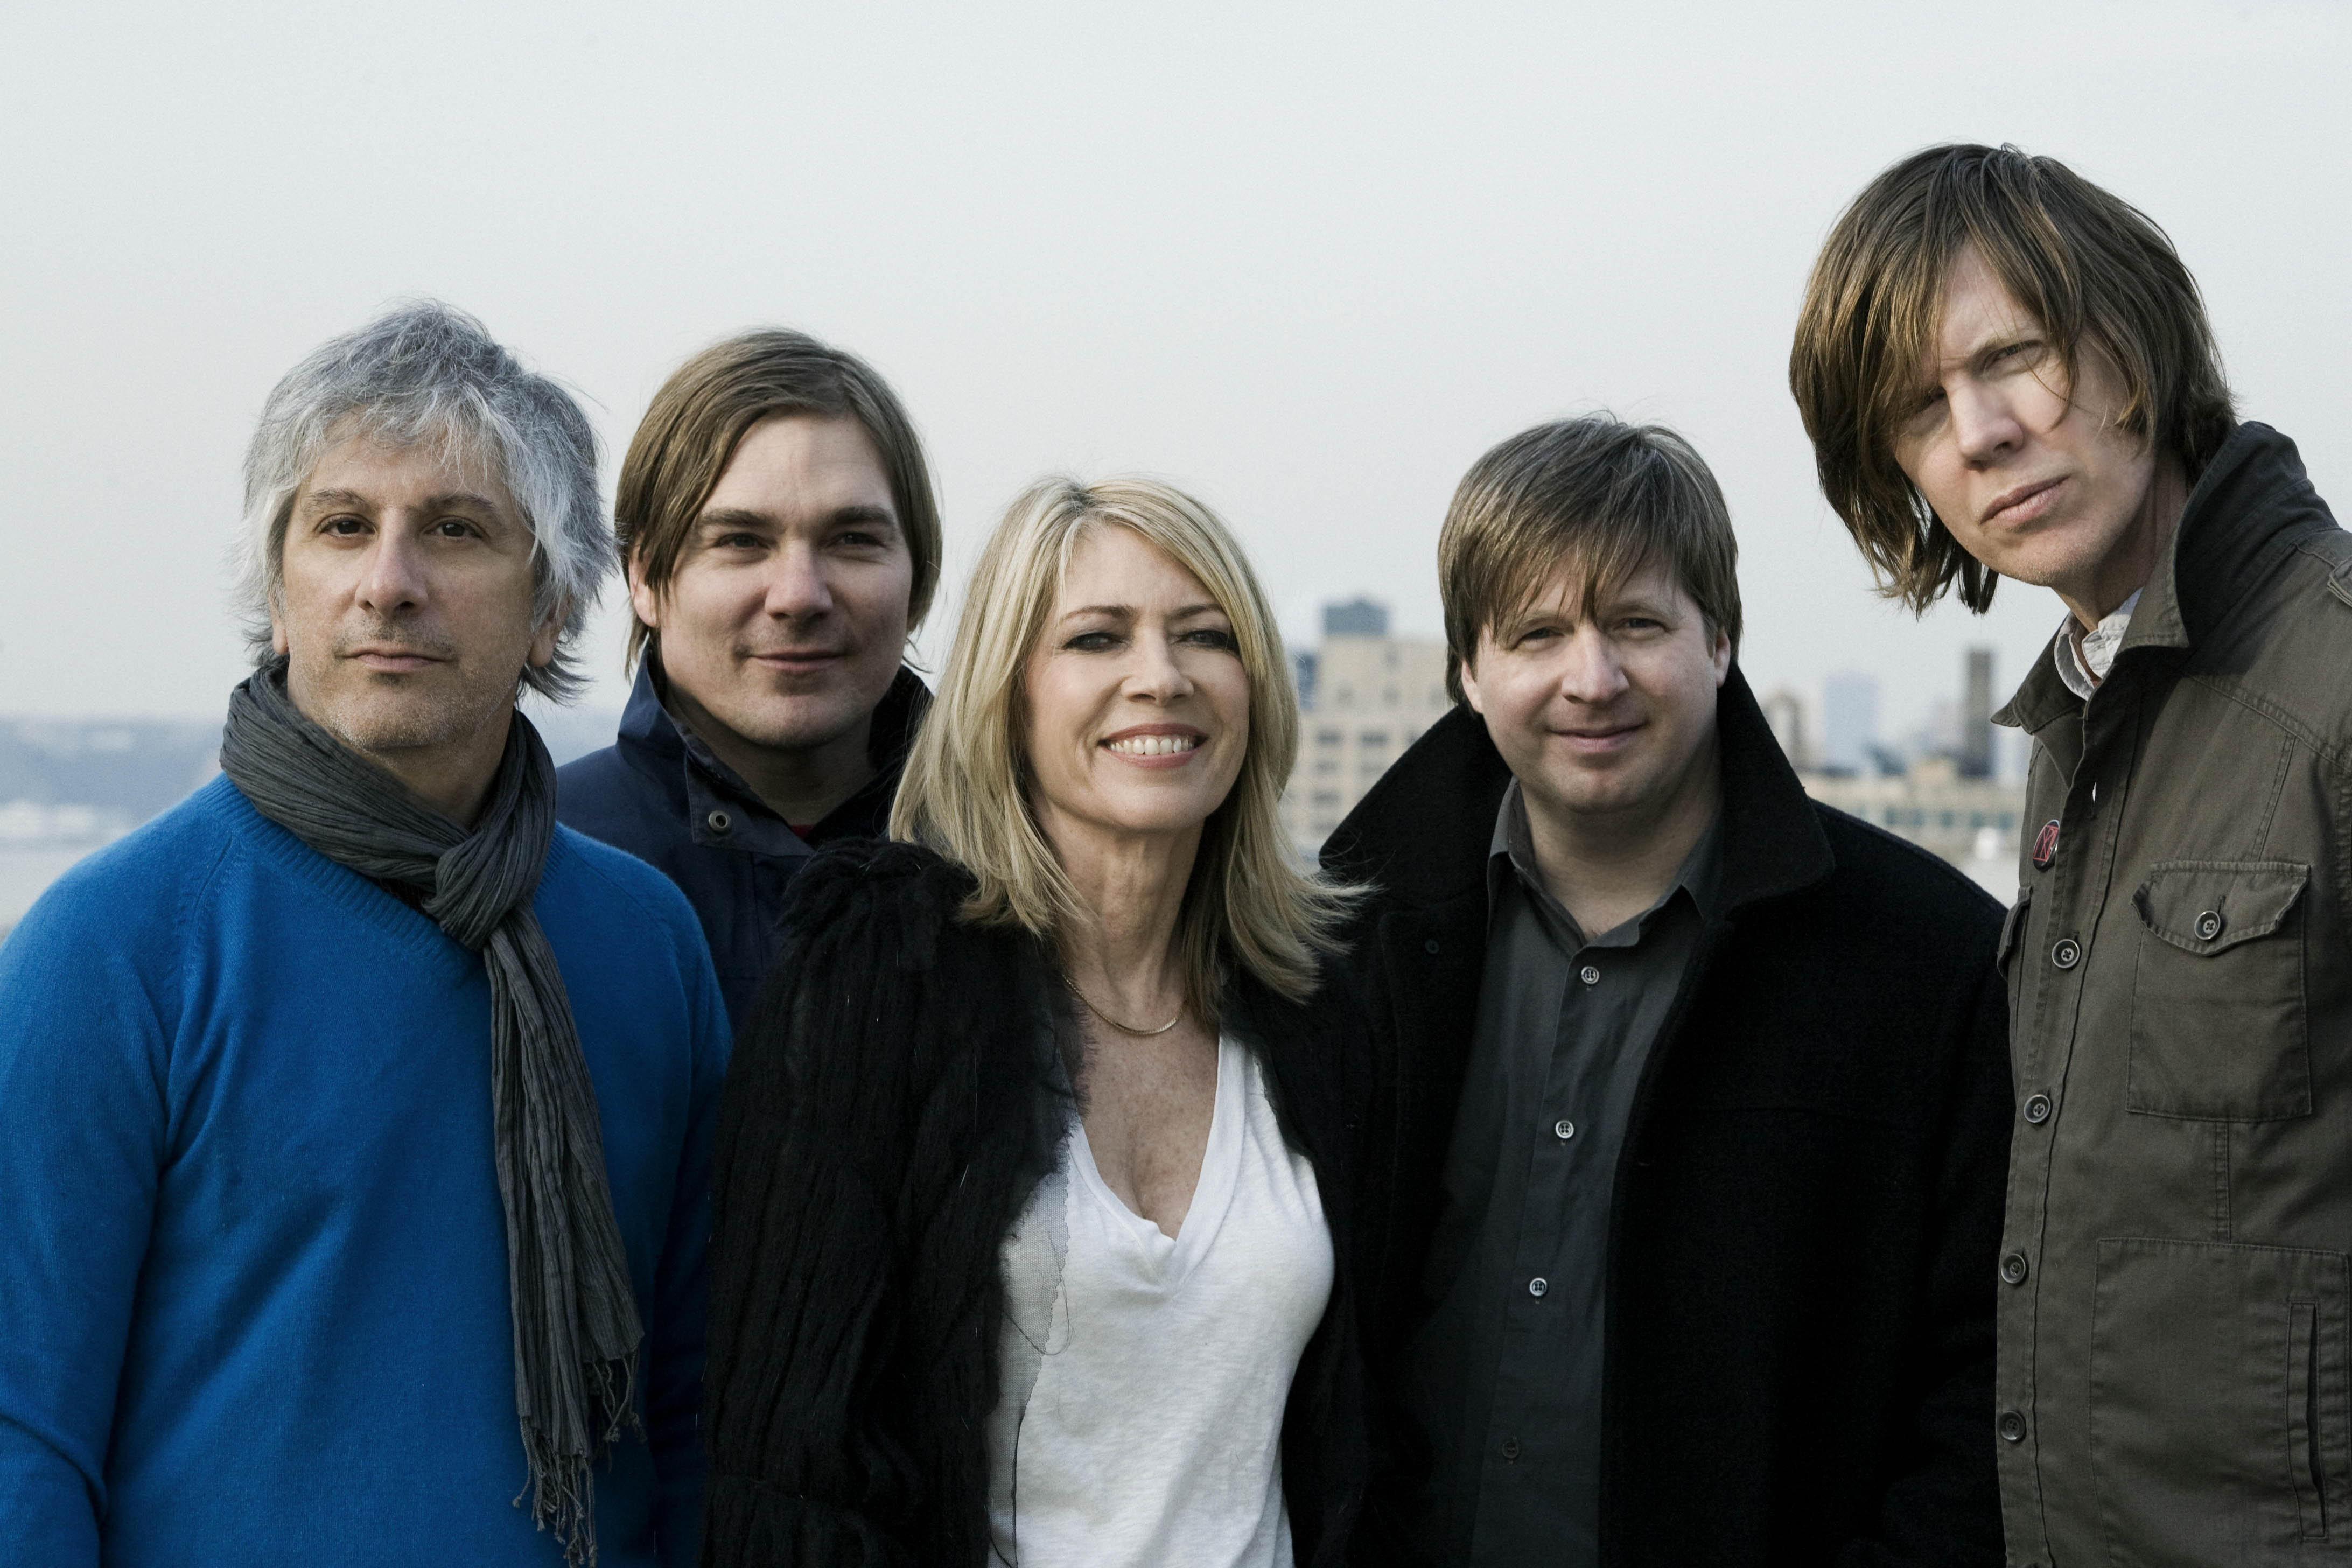 sonic youth The 20 Worst Rock and Roll Hall of Fame Snubs